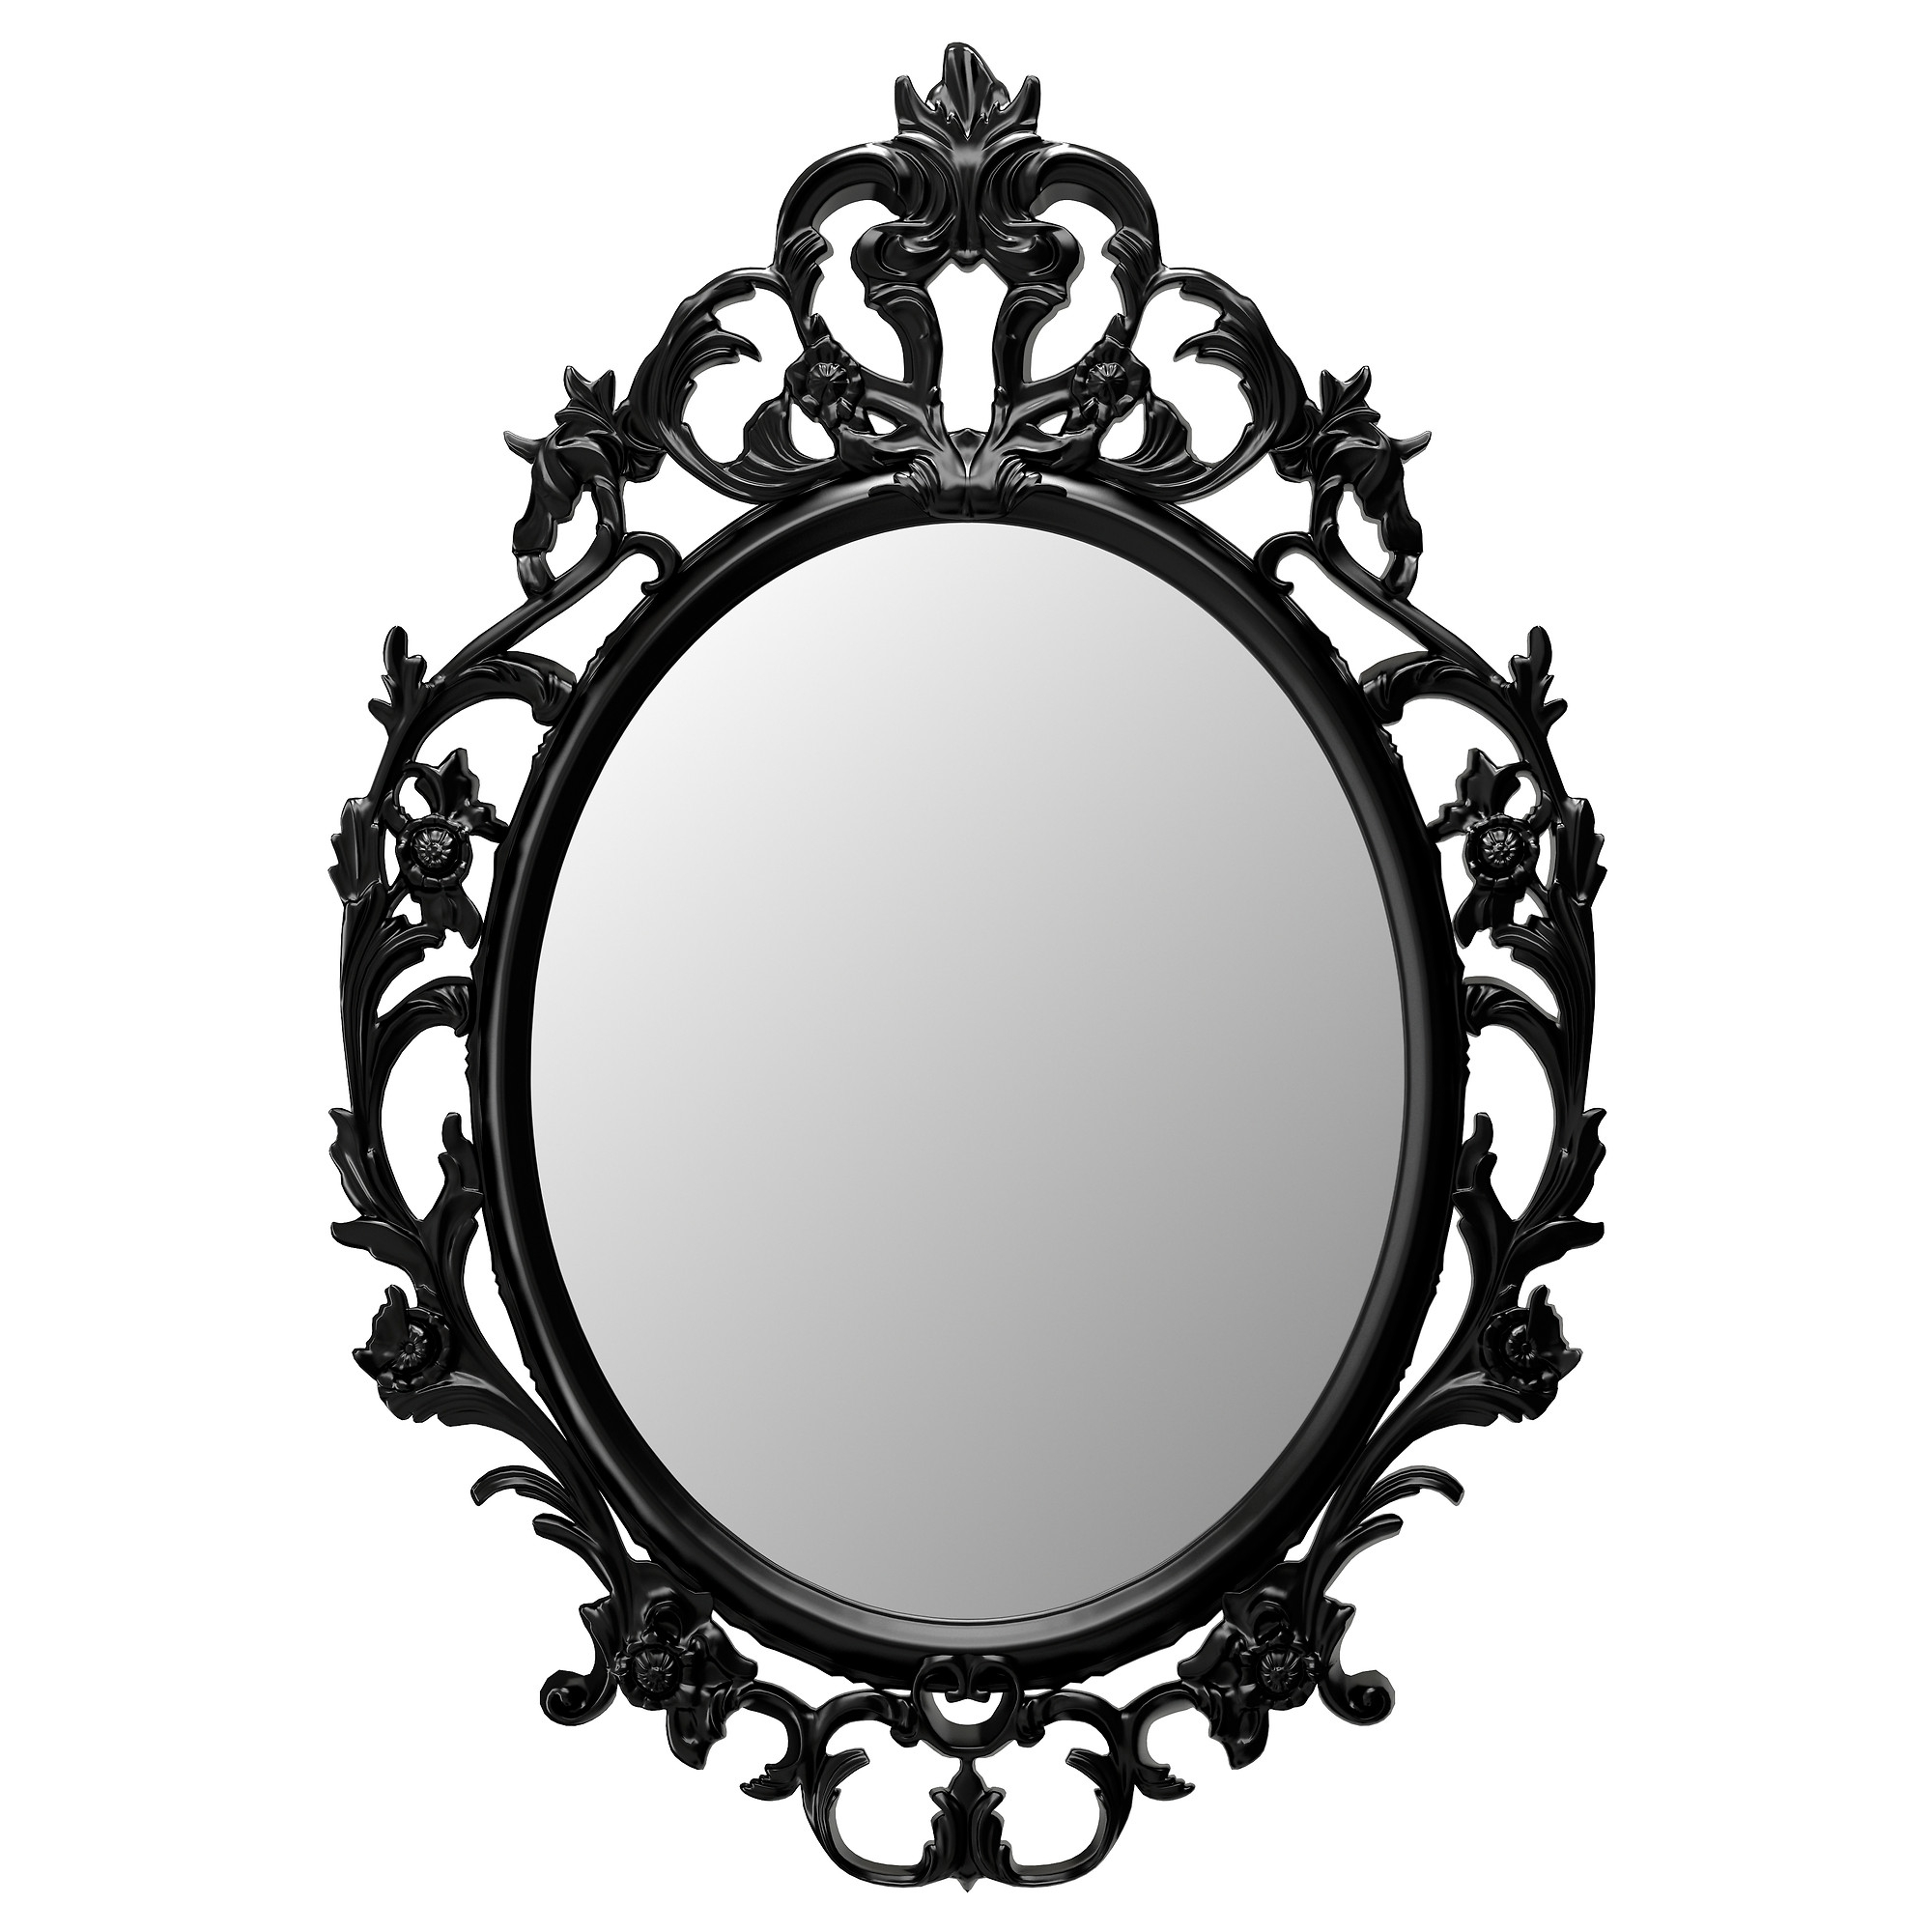 Ung Drill Mirror Ikea Intended For Baroque Mirror Black (Image 14 of 15)